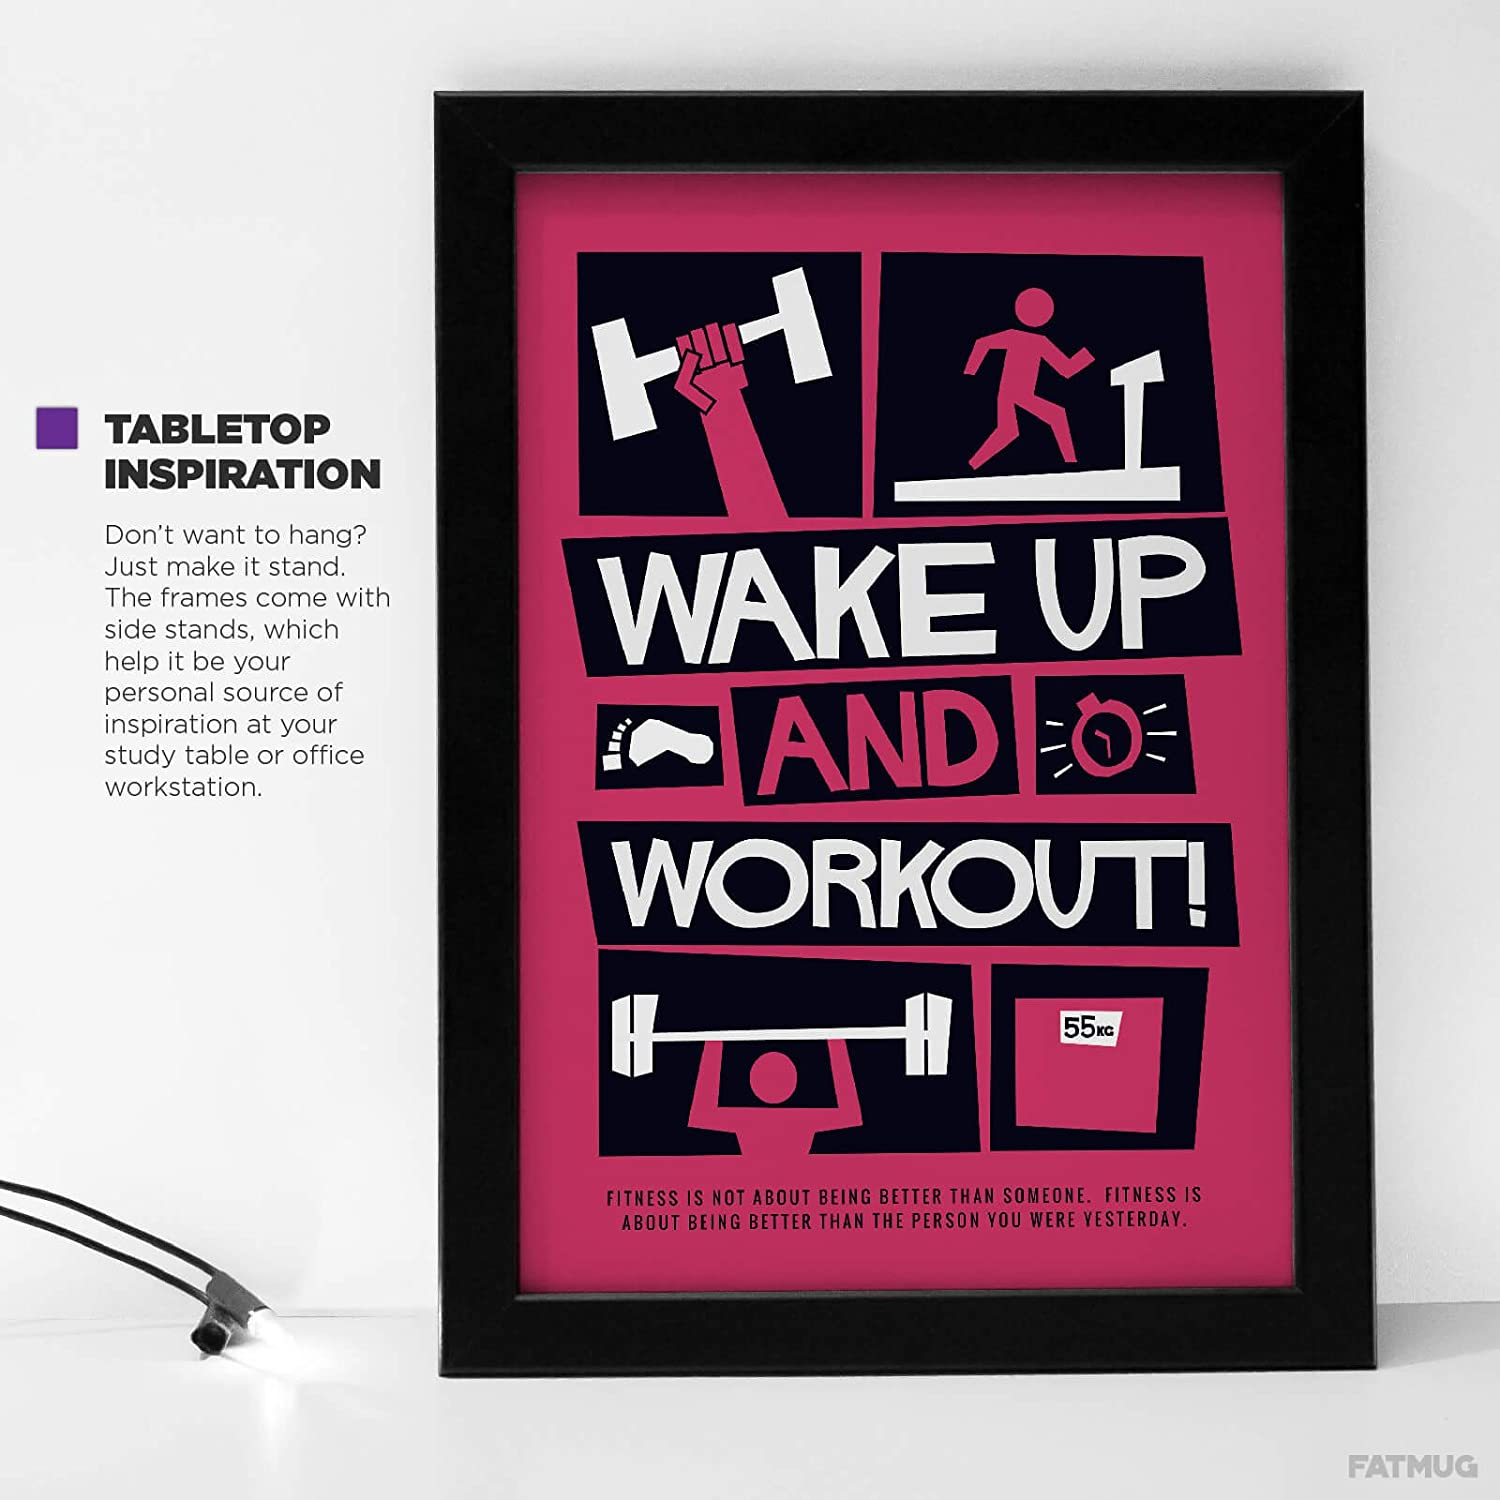 Buy Gym Posters Framed |Motivational Posters for Room - Daily ...